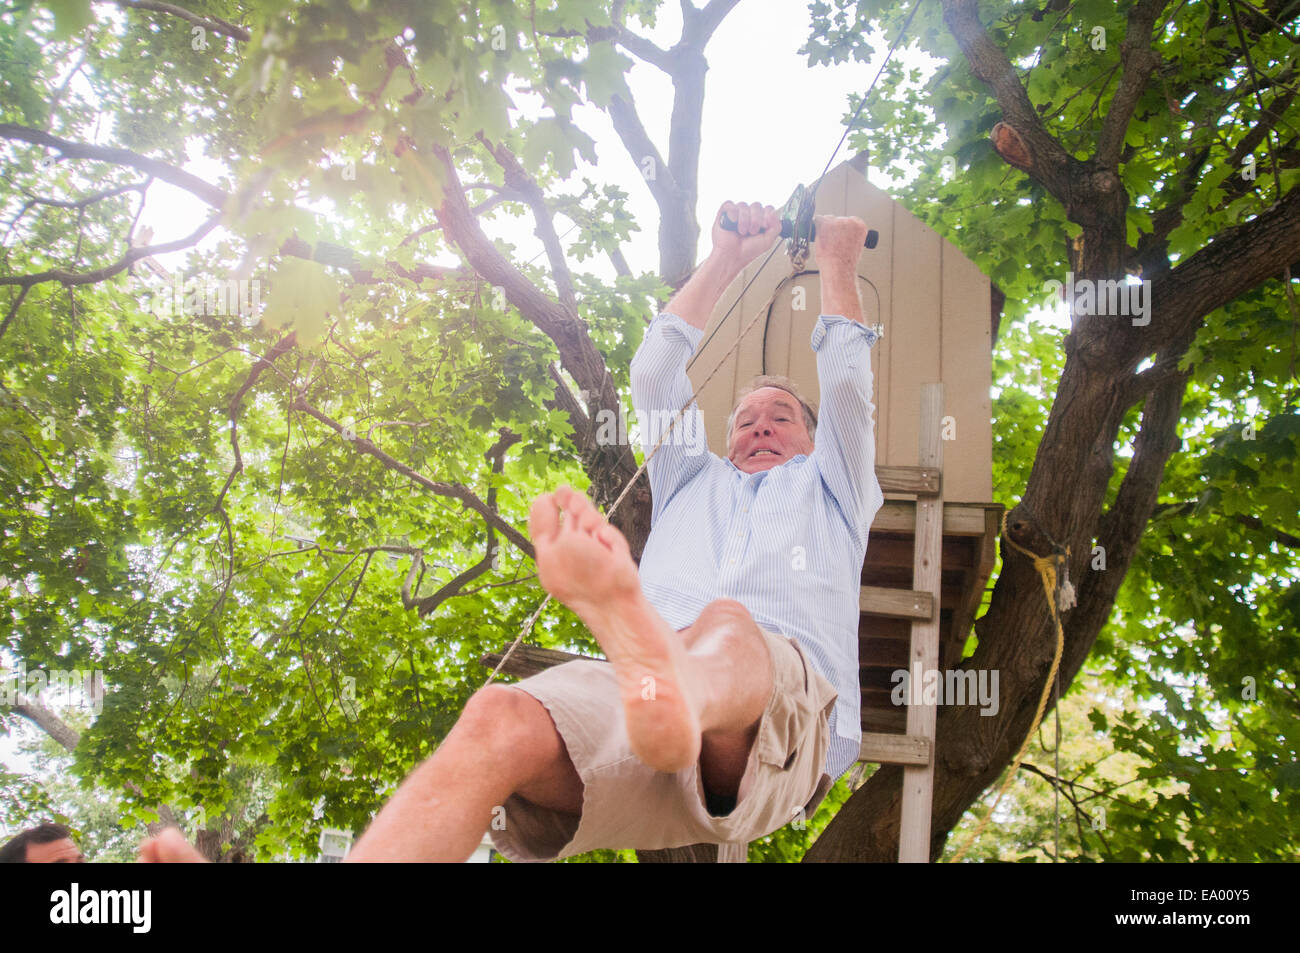 Mature man sliding down on pulley from tree house - Stock Image